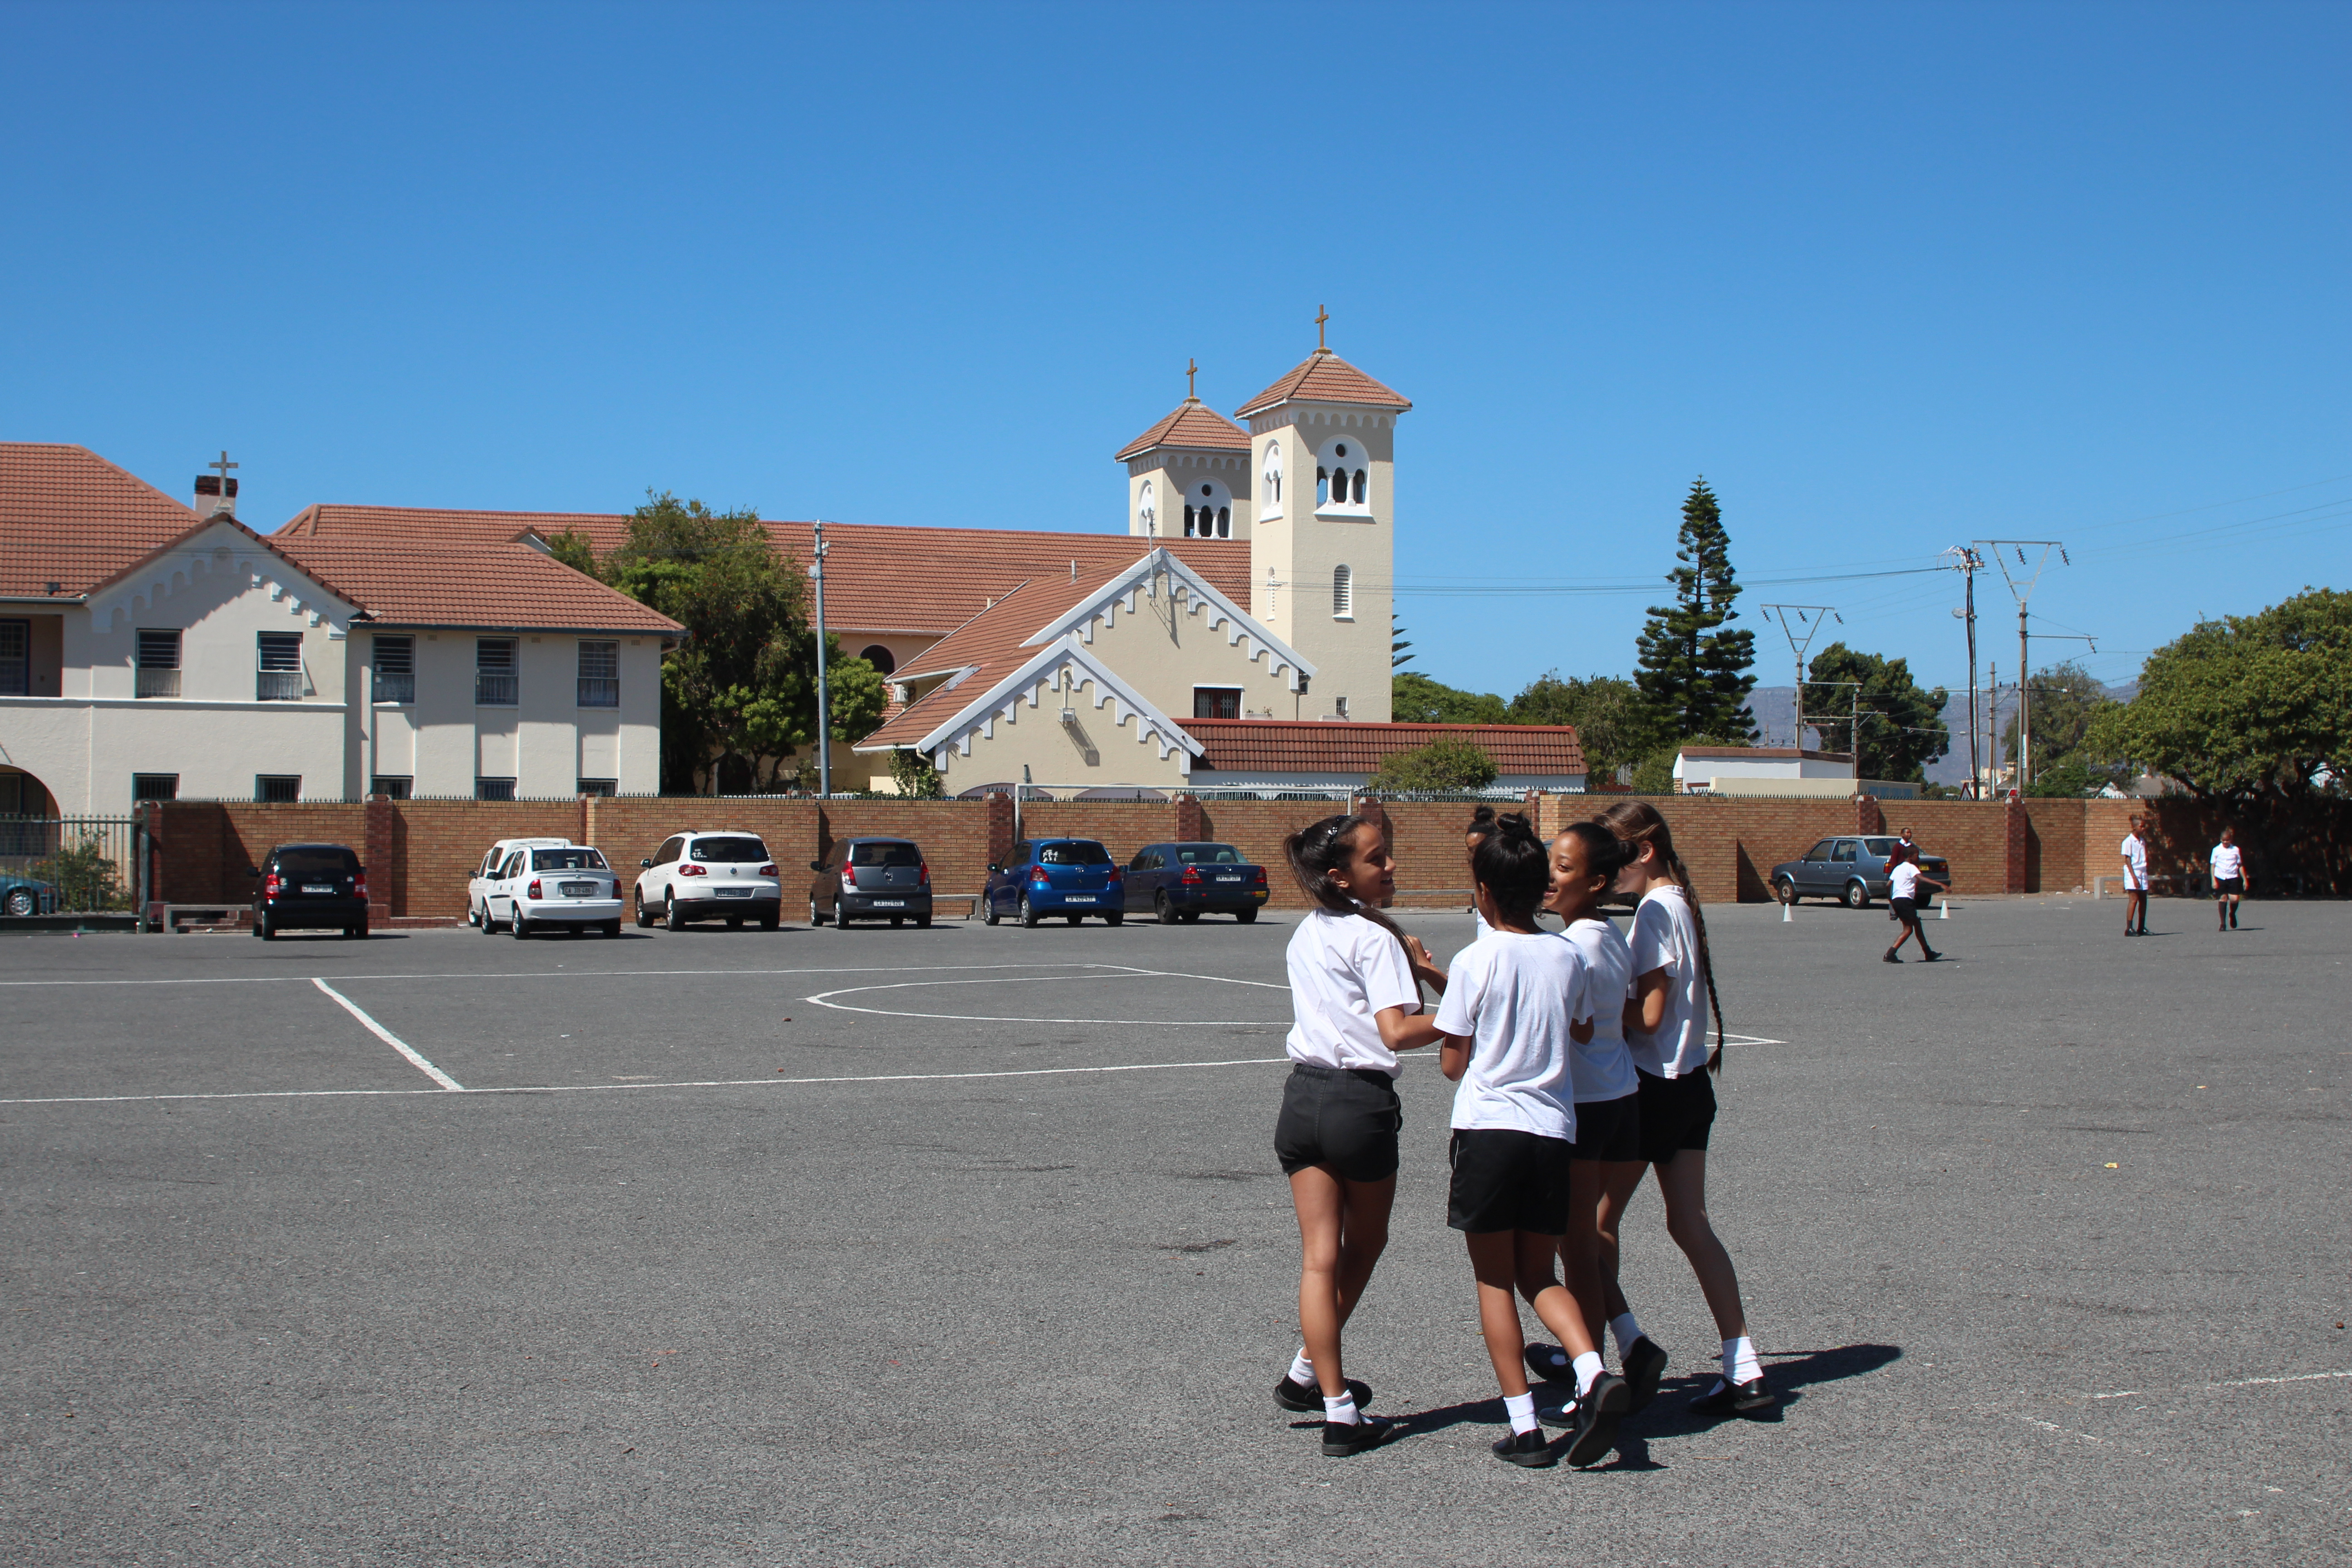 St Augustine's Wittebome